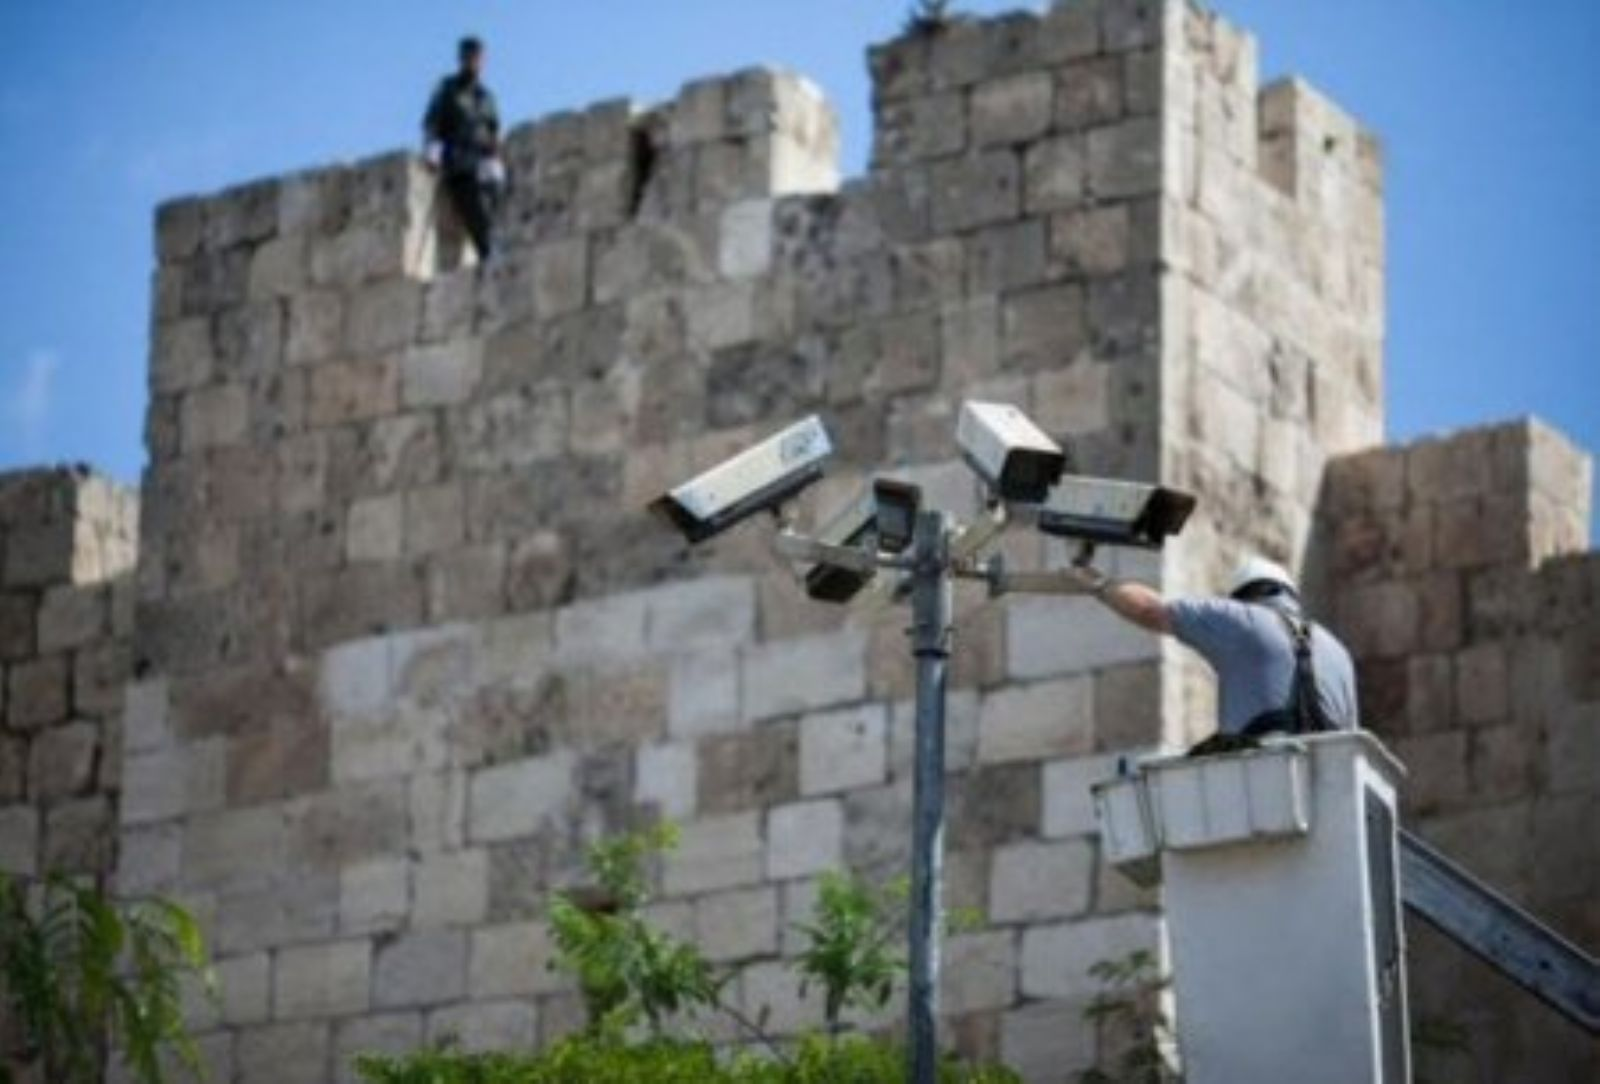 Cameras to monitor Palestinians installed at Al-Aqsa Mosque